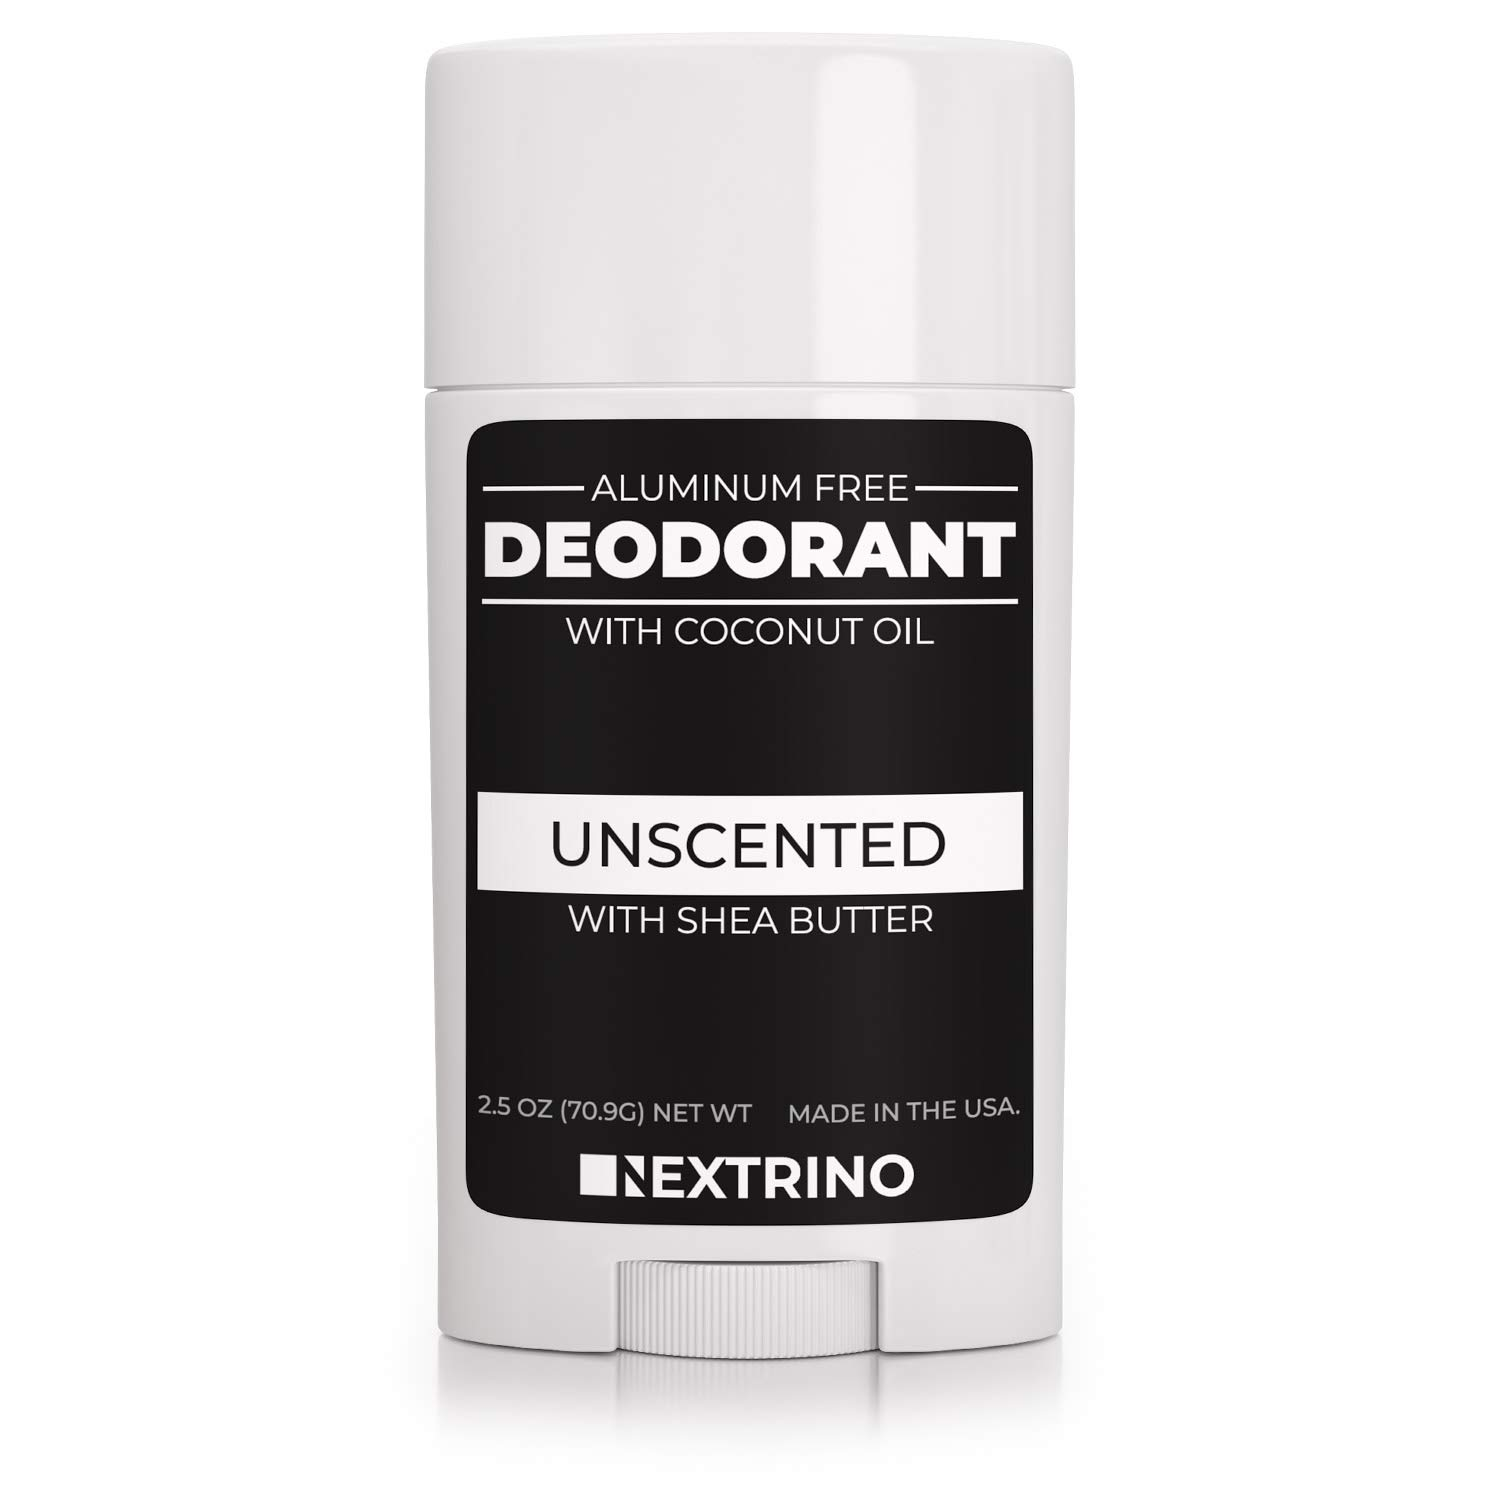 All Natural Aluminum Free Deodorant - Made in the USA with Coconut Oil & Essential Oils for Women and Men - Vegan, Non-GMO & Organic Ingredients (Unscented)